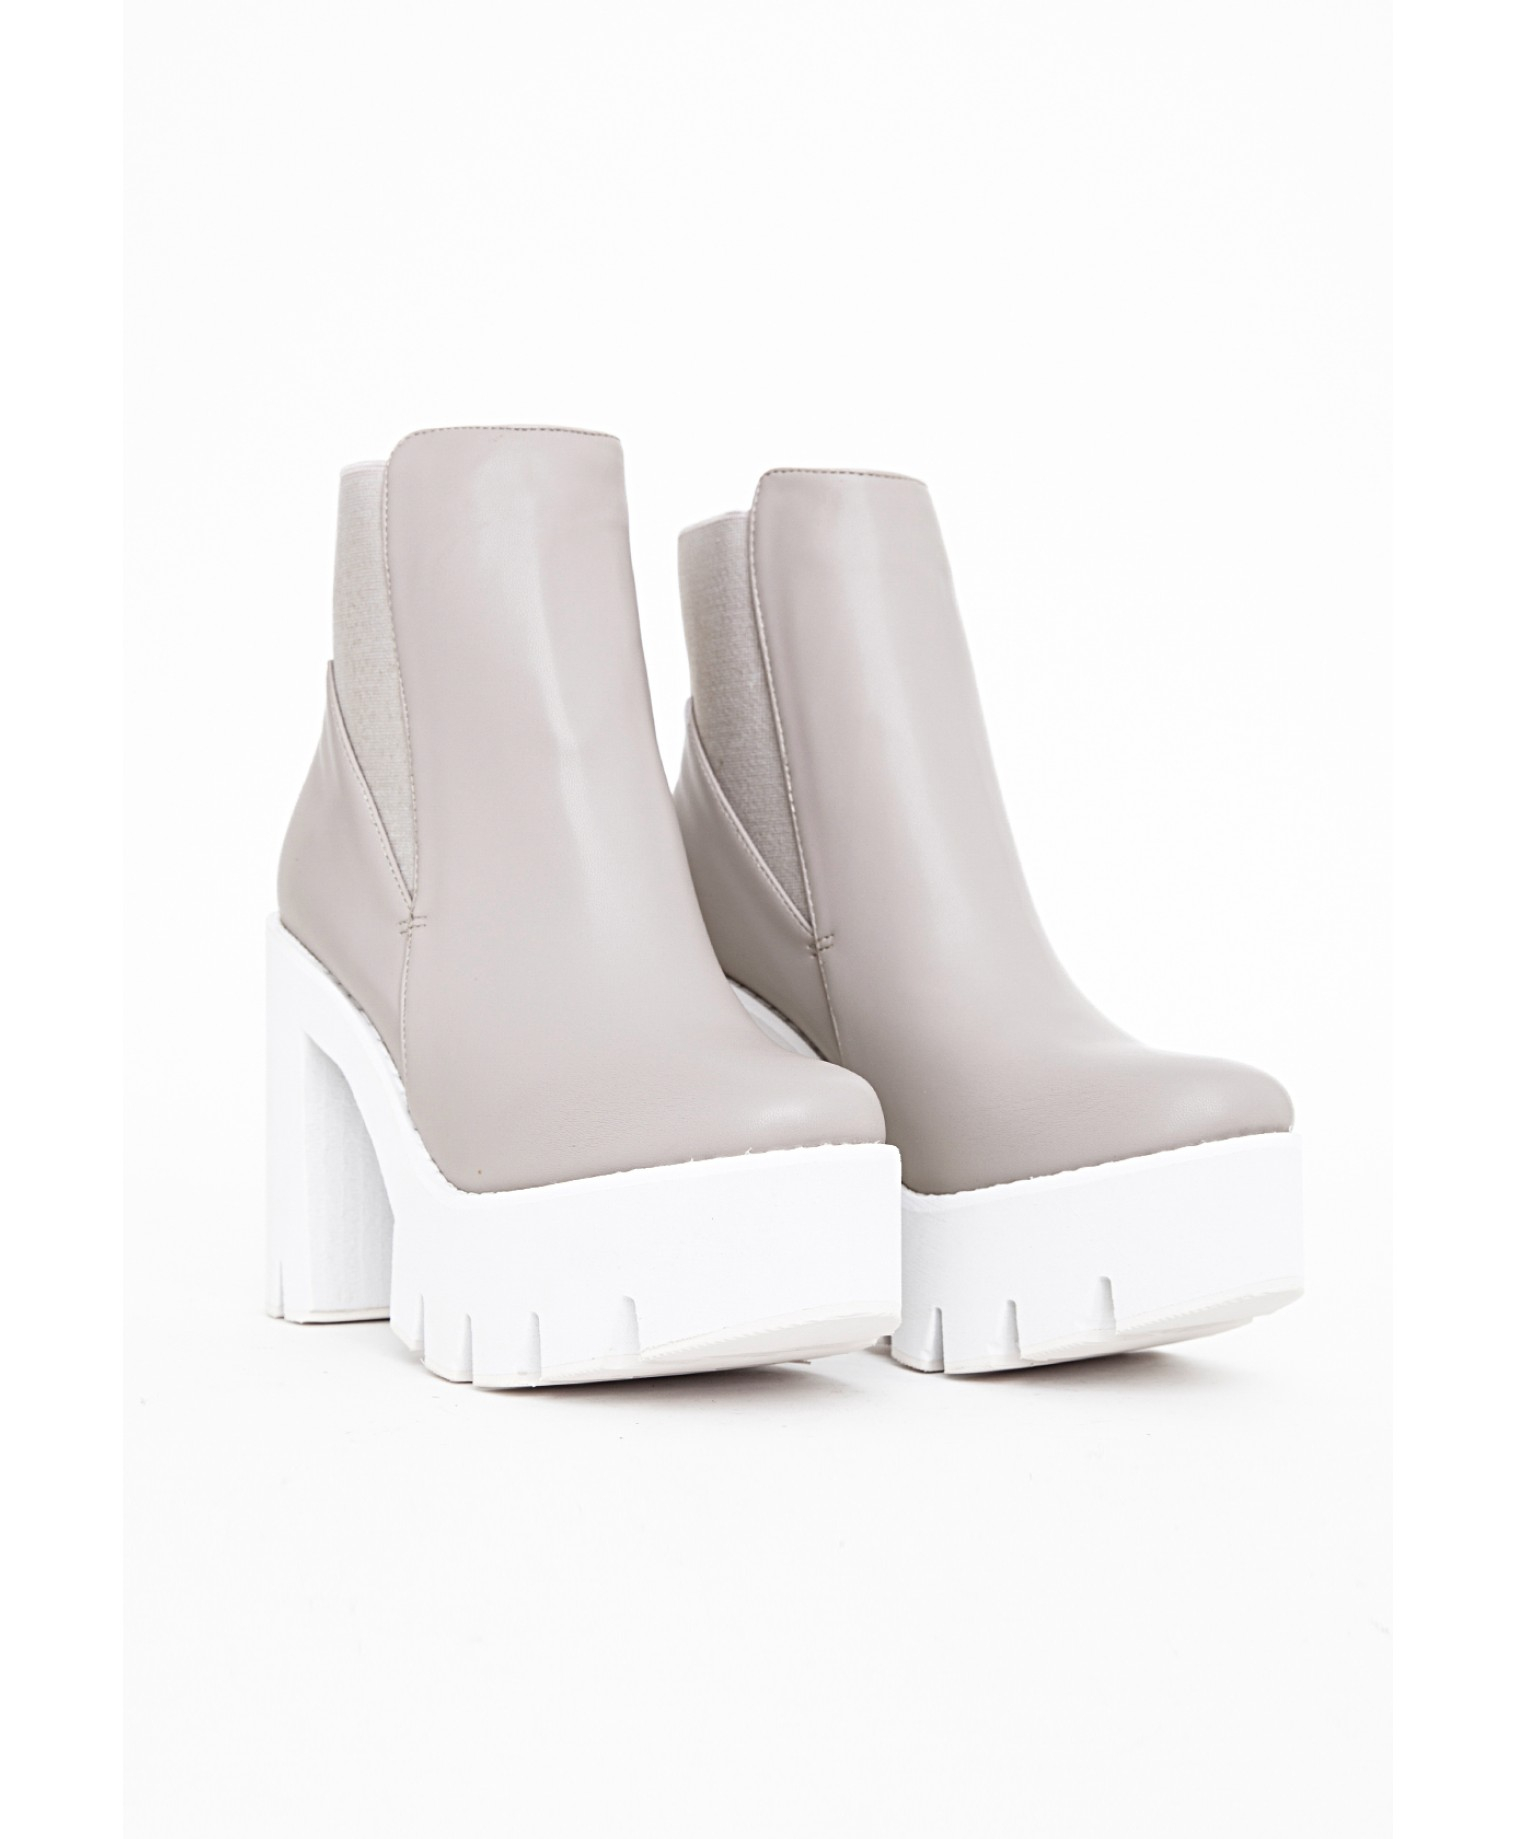 Missguided Alexia Cleated Sole Chelsea Boots Grey in Grey